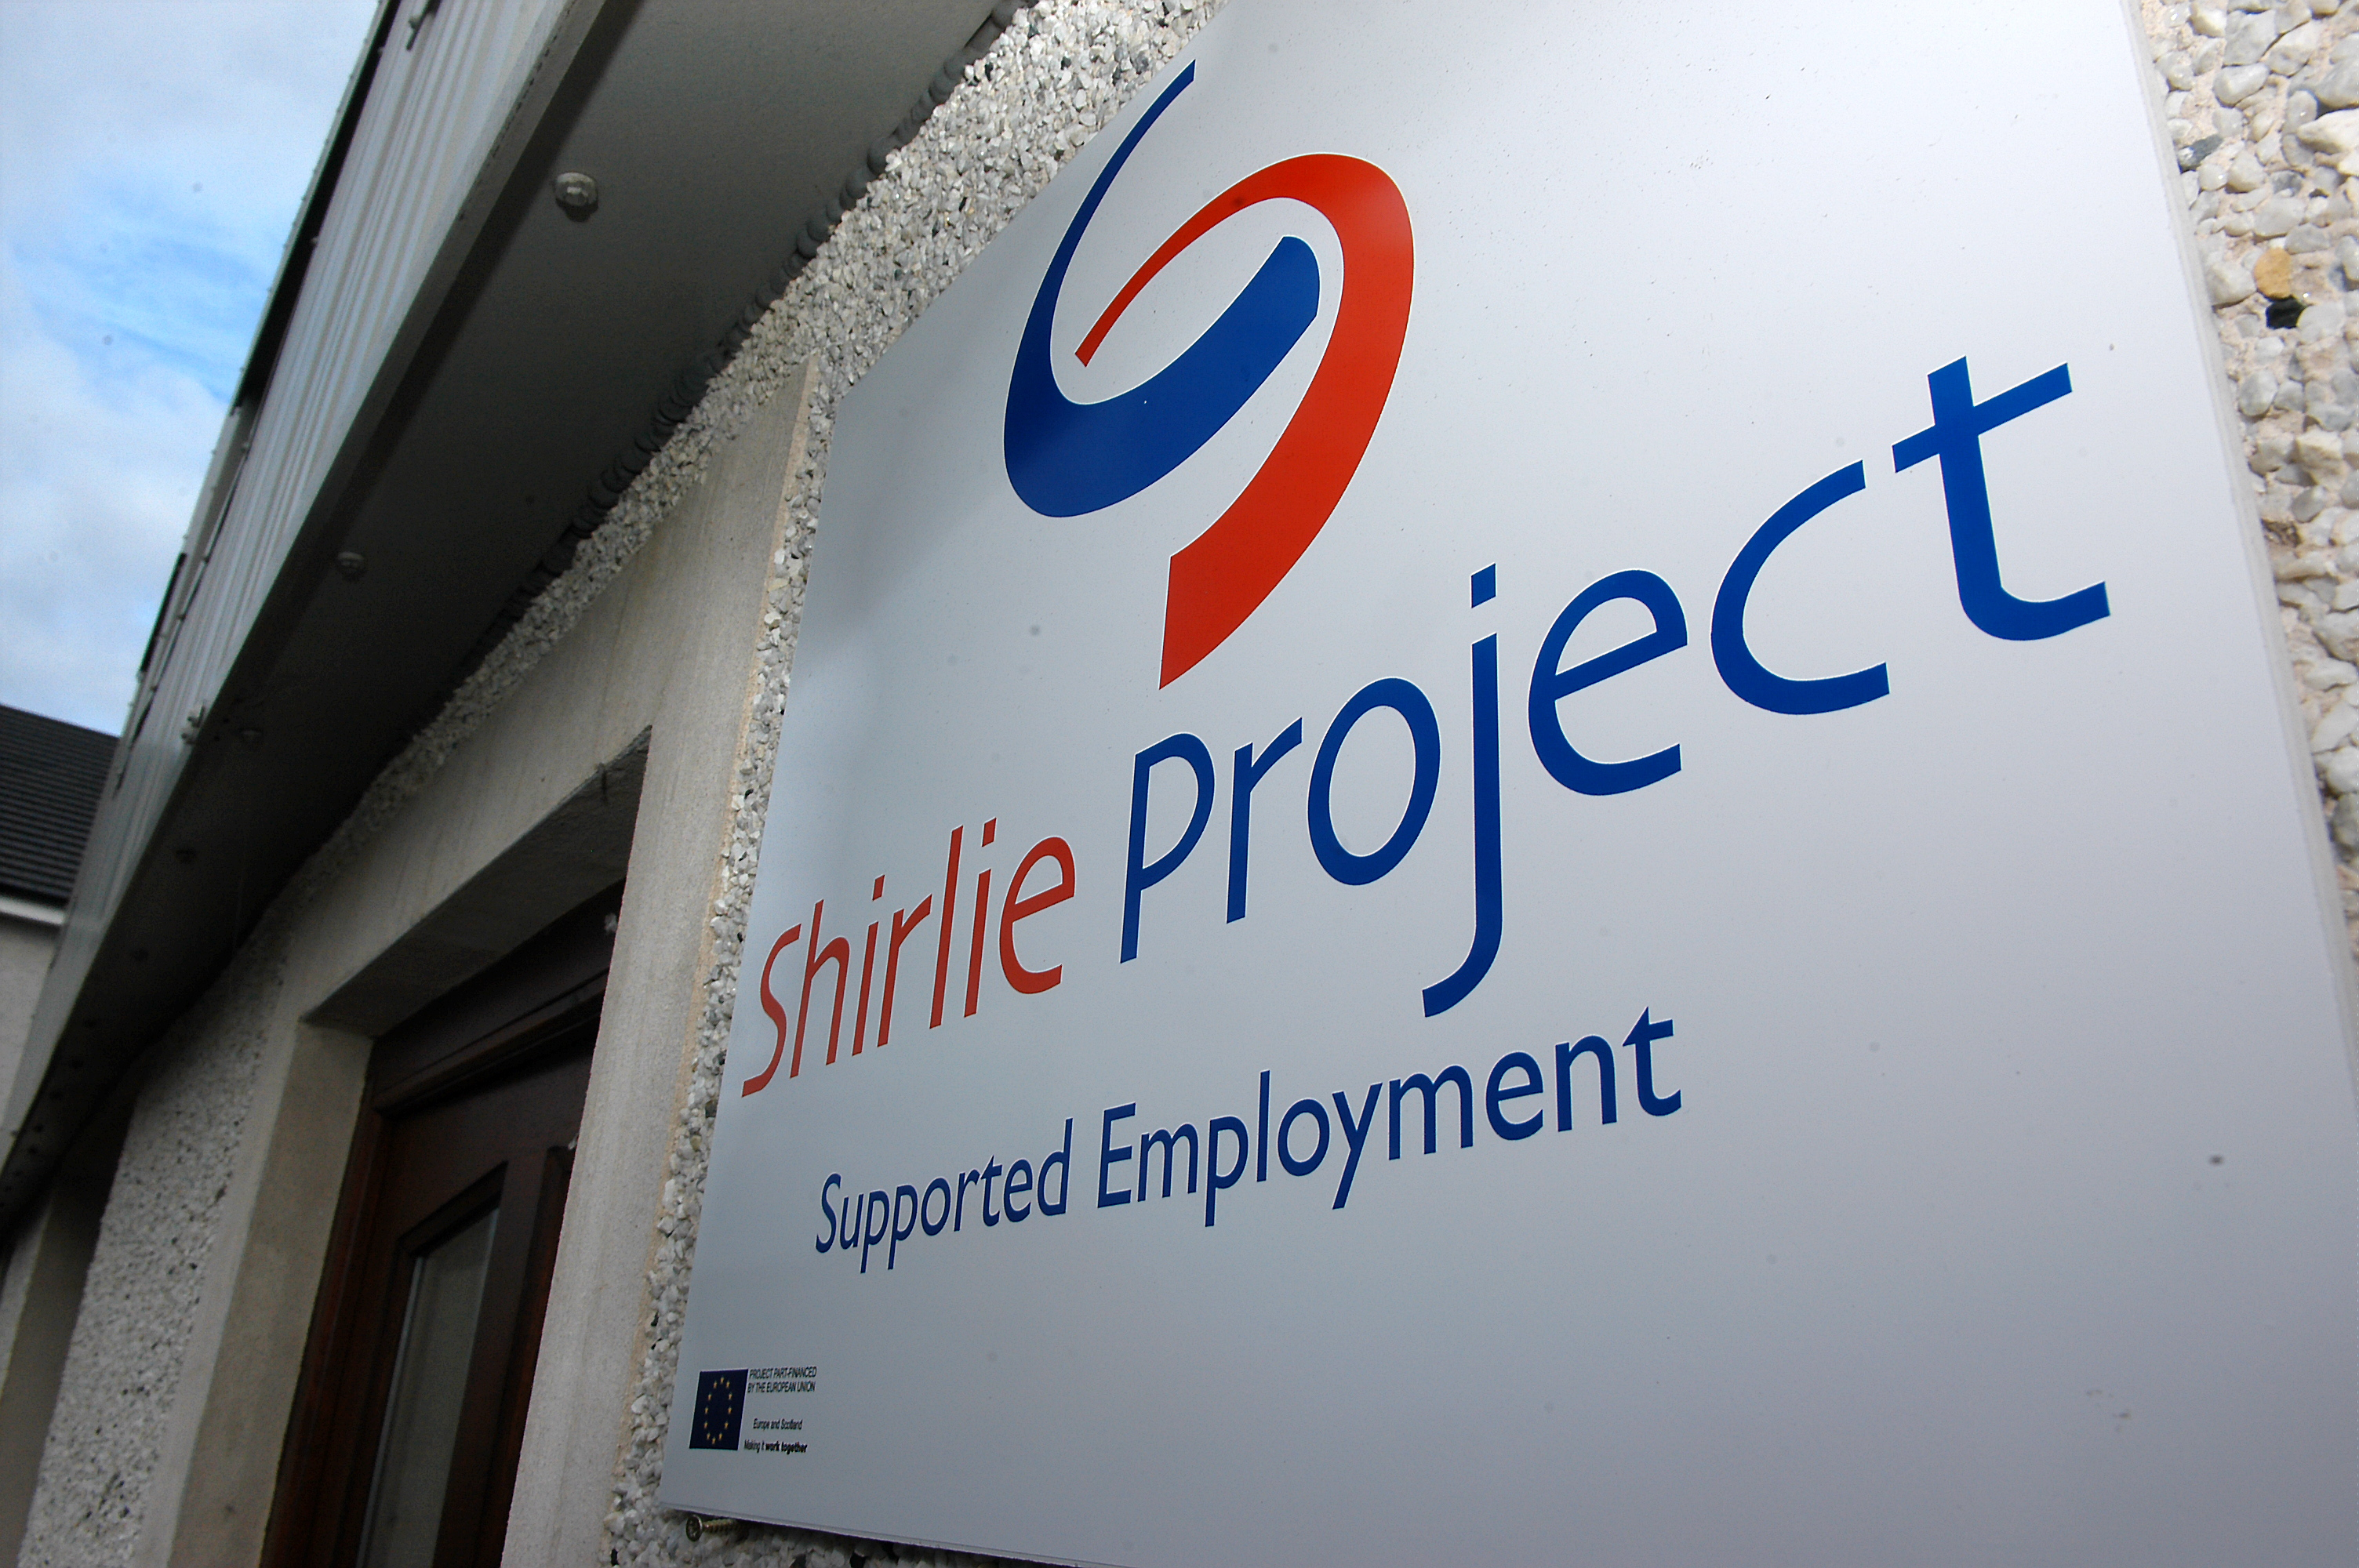 The Shirlie project, who have helped place people with support needs in employment, have fallen into liquidation